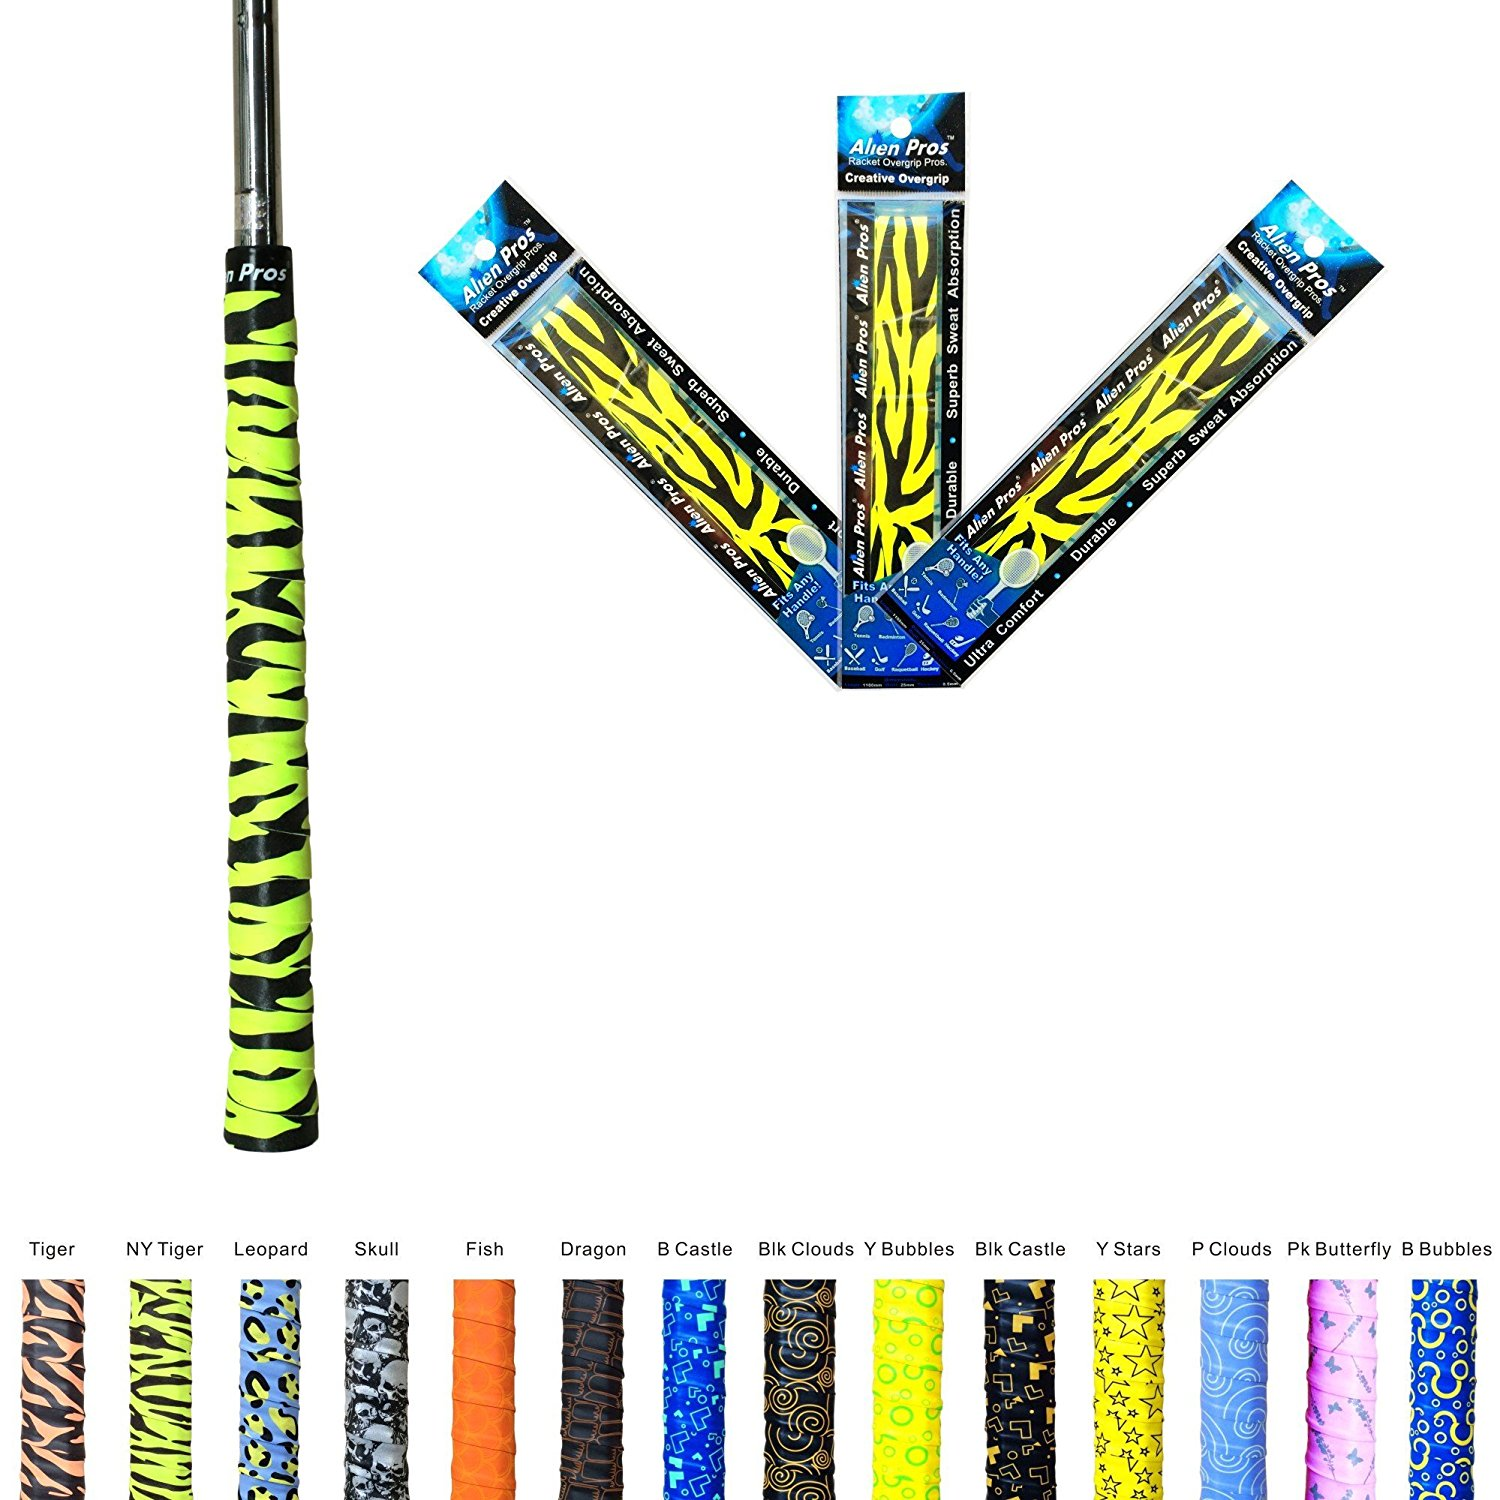 Alien Pros X-Tac Non-Slip Golf Grip Tape - Slip Resistant Overgrip Tape for Golf Clubs - Take Pride in your Drivers and Irons by Re-gripping your Golf Handles and Equipment - 3 Pack